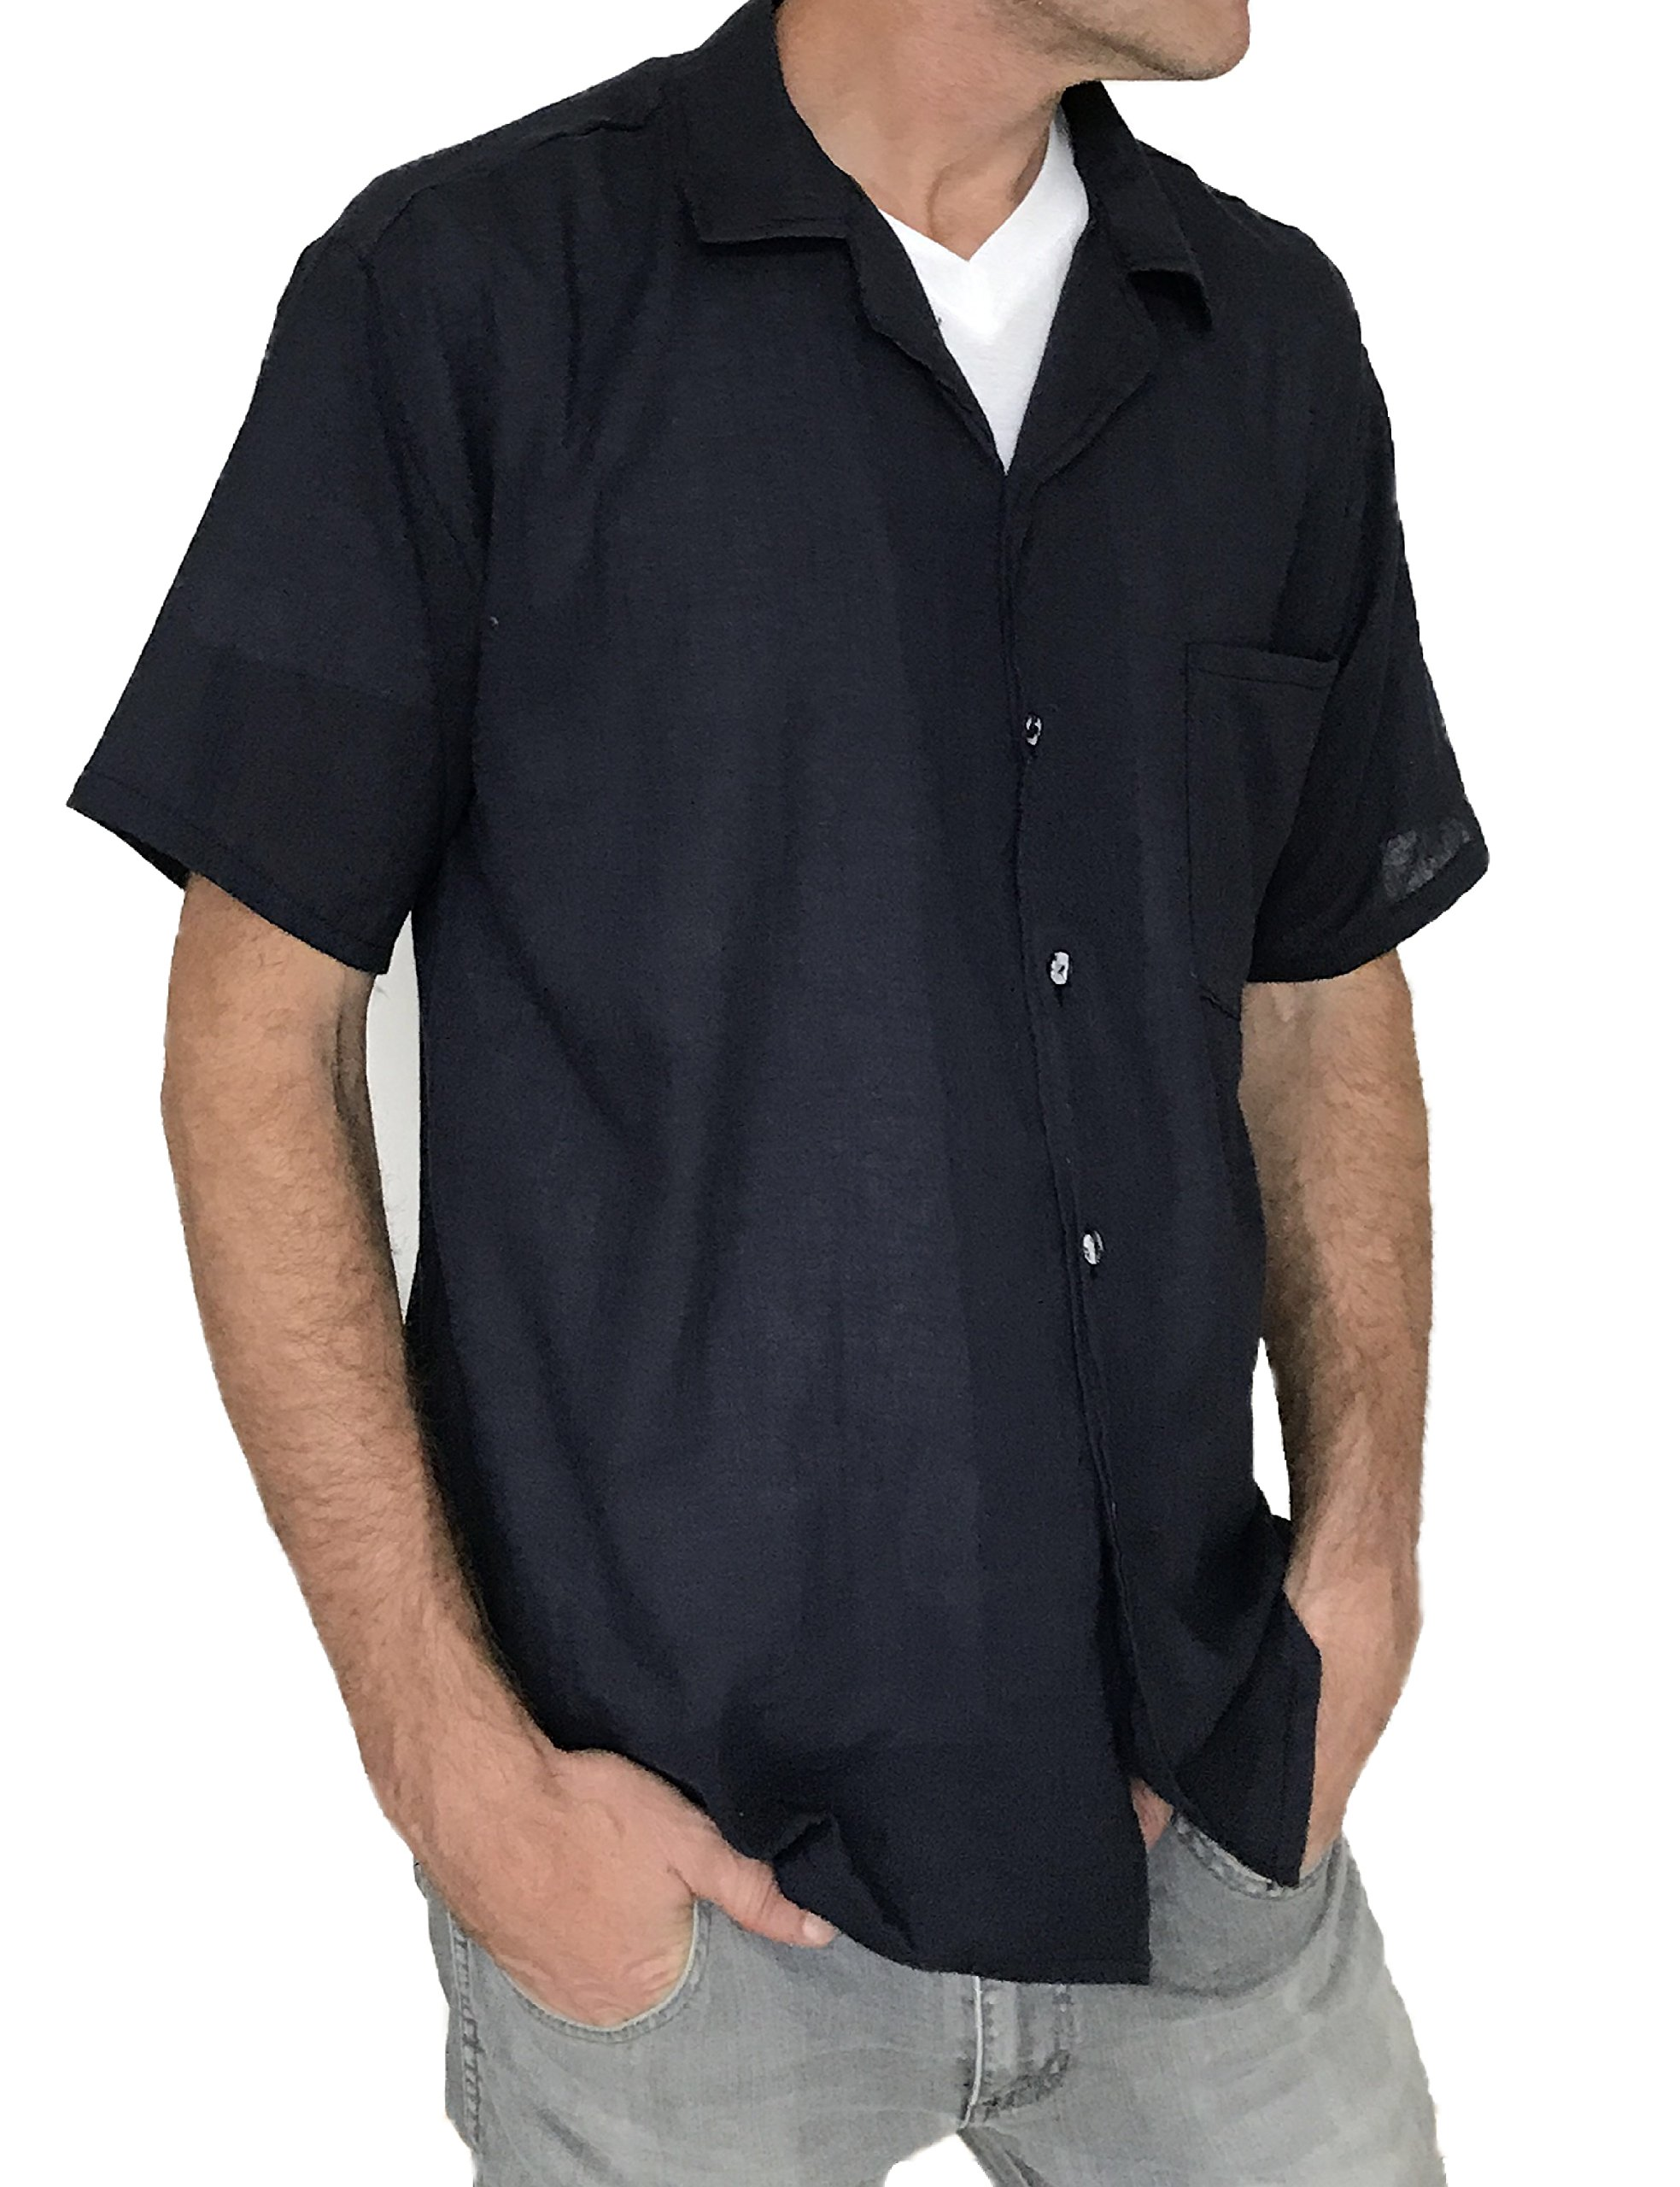 Love Quality Men's Button Shirt Light Weight 100% Cotton Hippie Casual Shirts (Large, Navy)